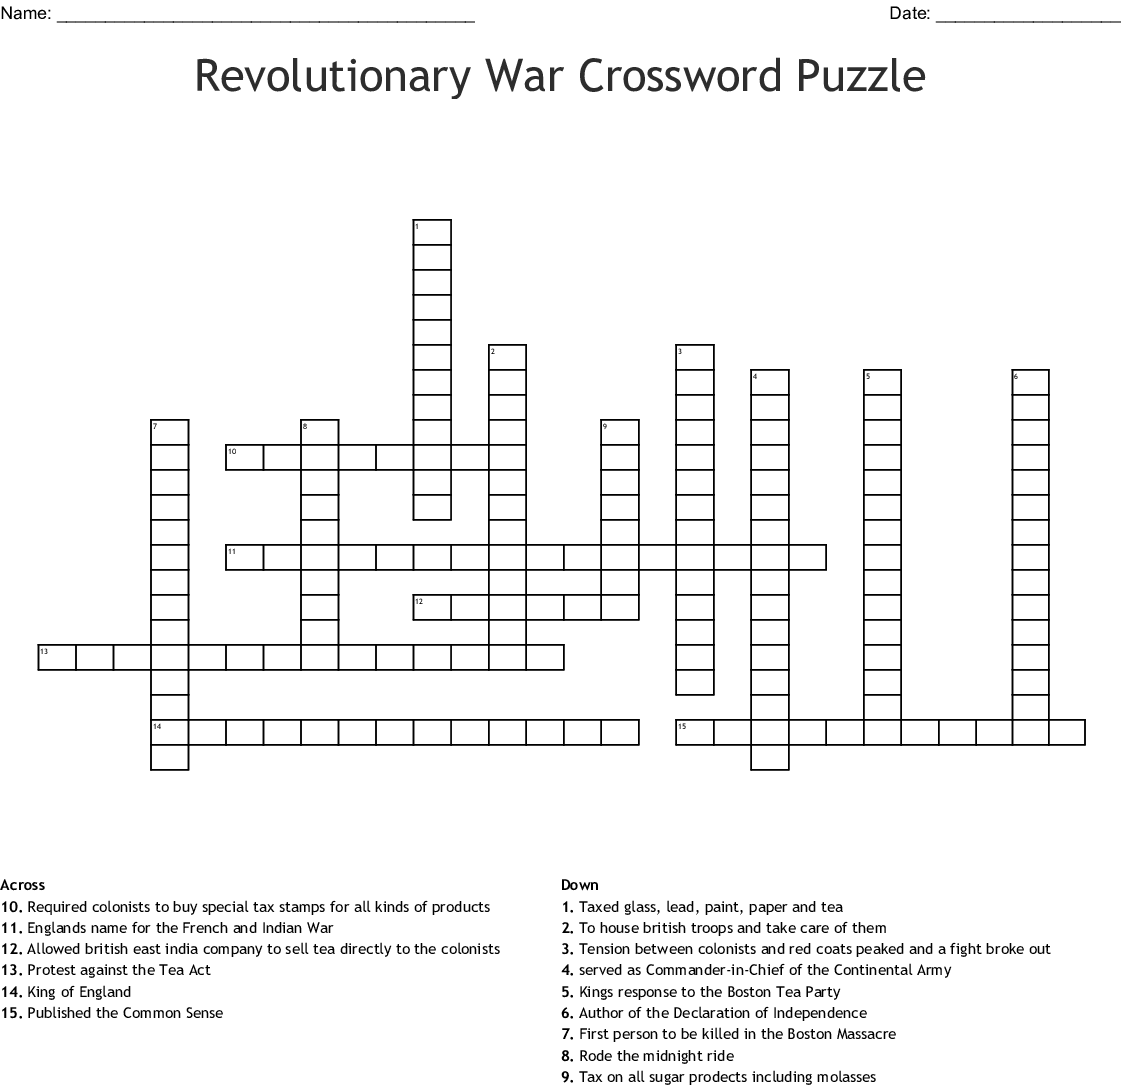 Revolutionary War Crossword Puzzle